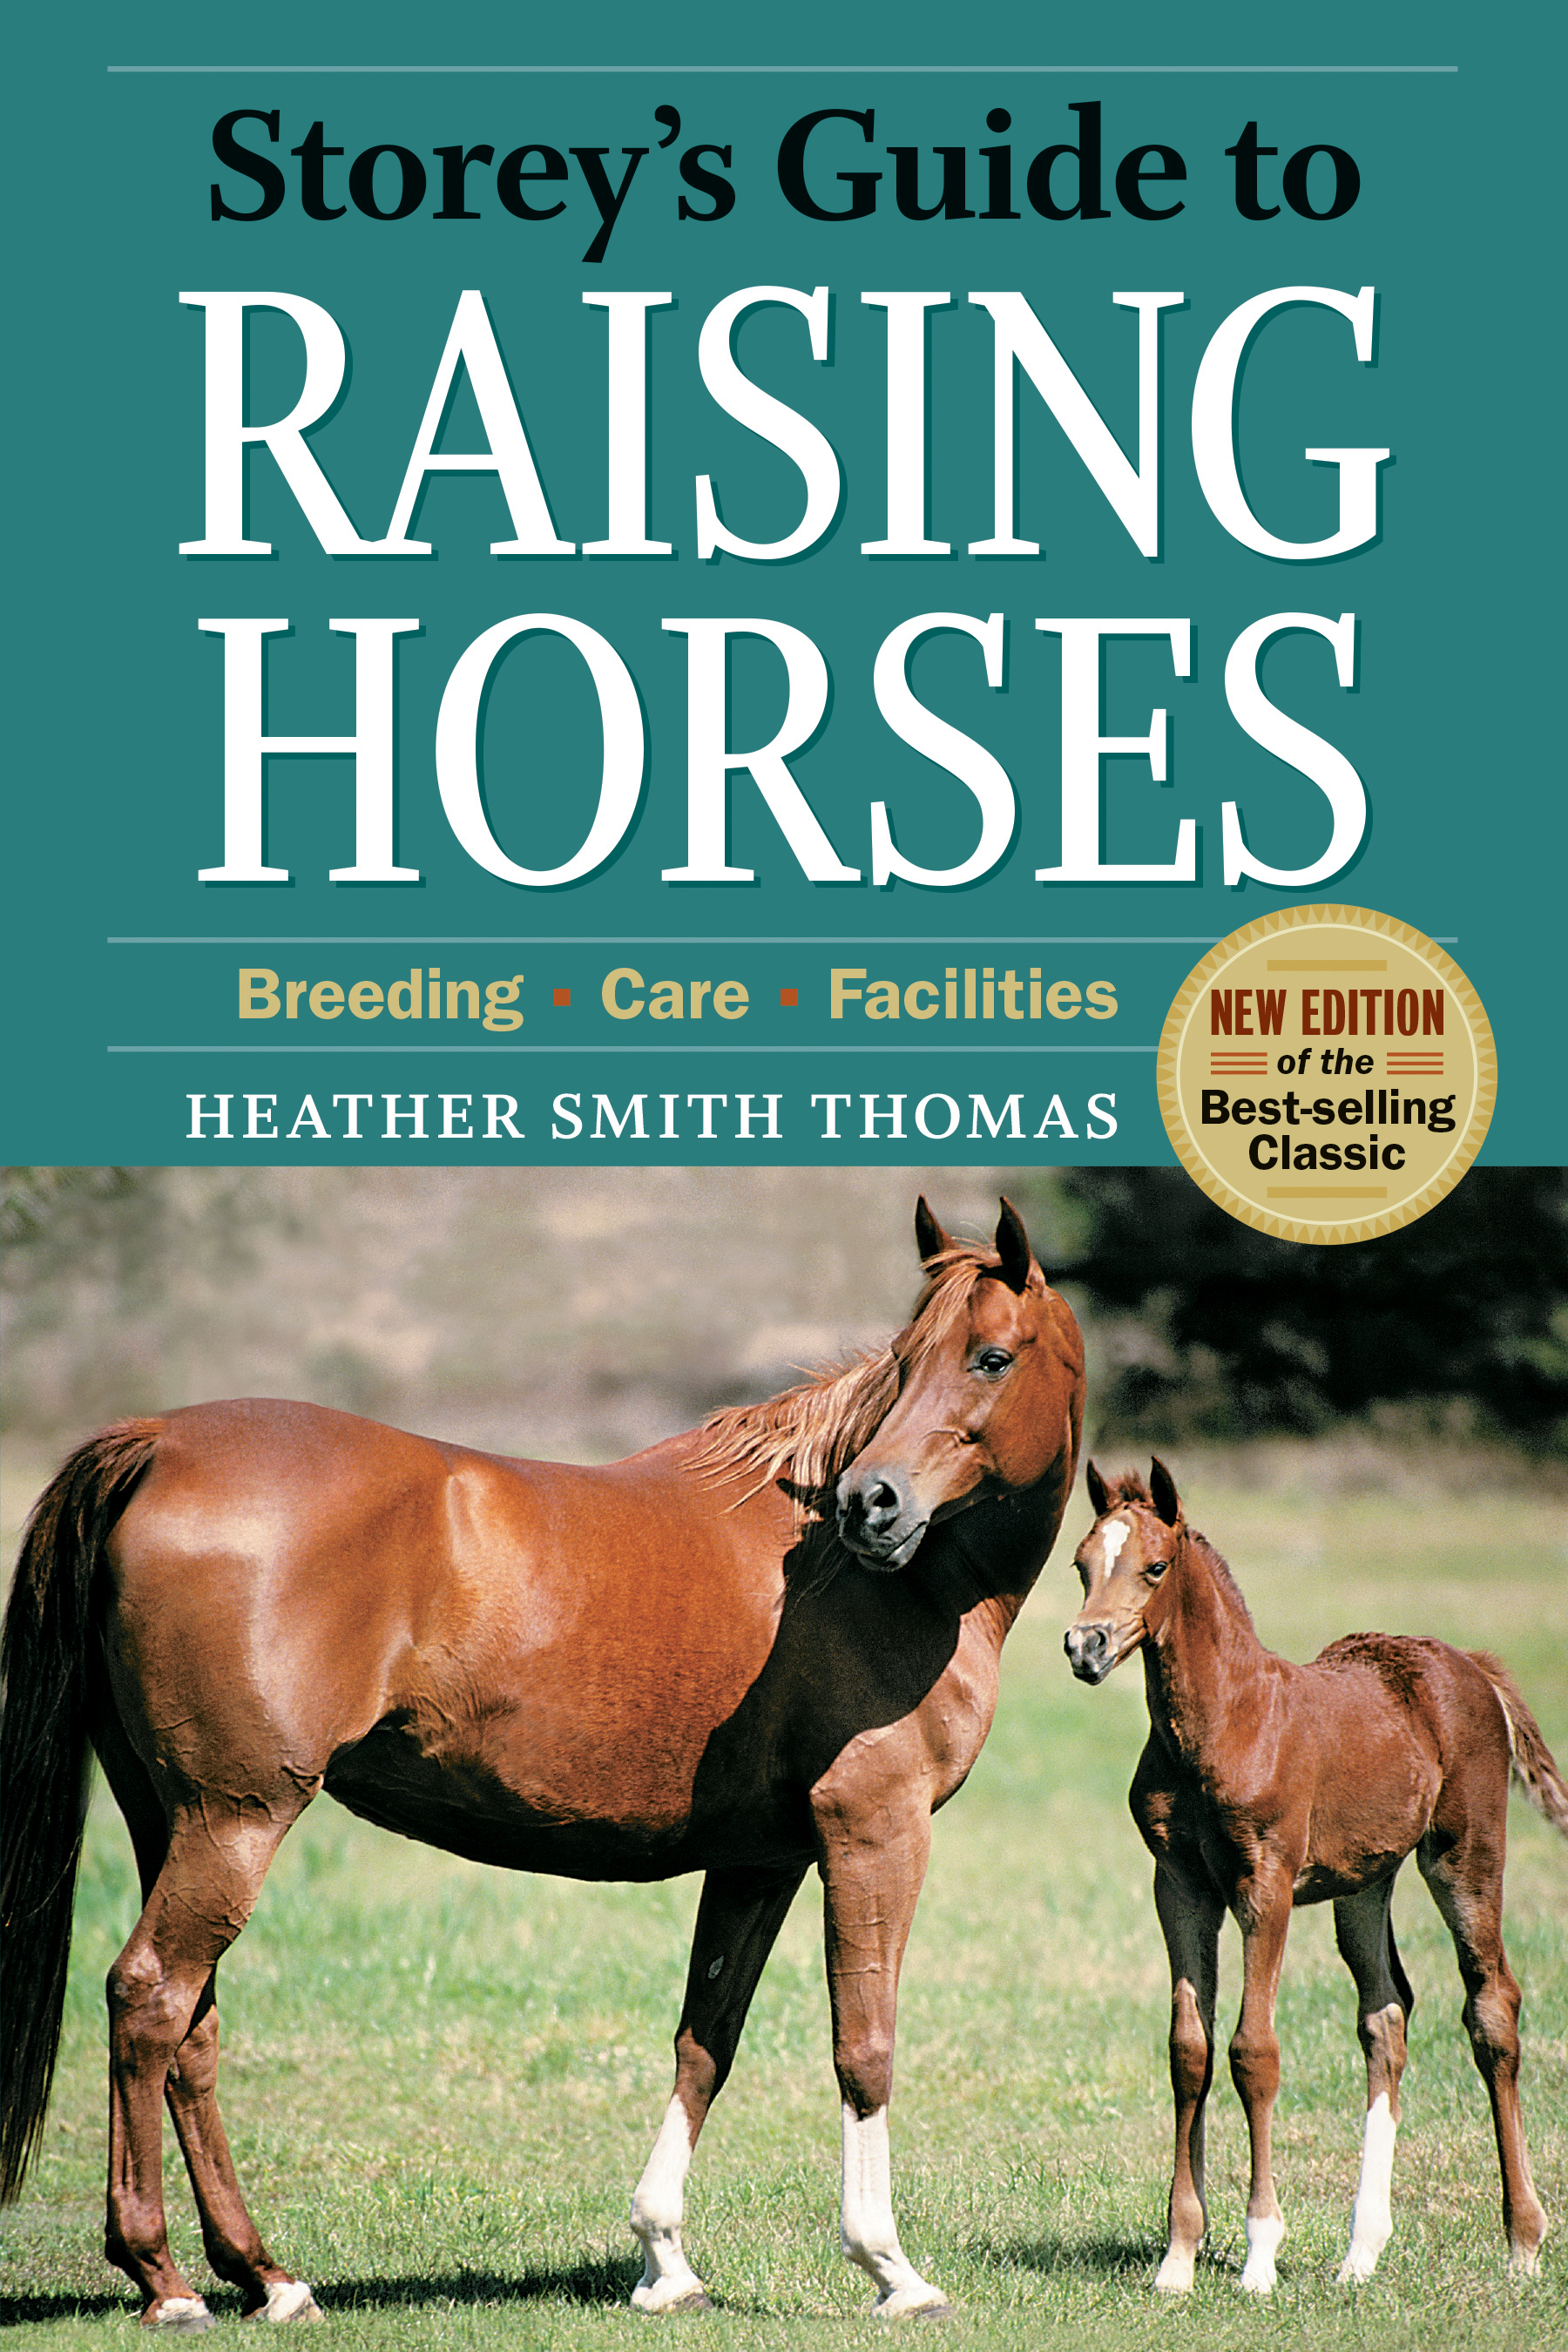 Storey's Guide to Raising Horses, 2nd Edition Breeding, Care, Facilities - Heather Smith Thomas